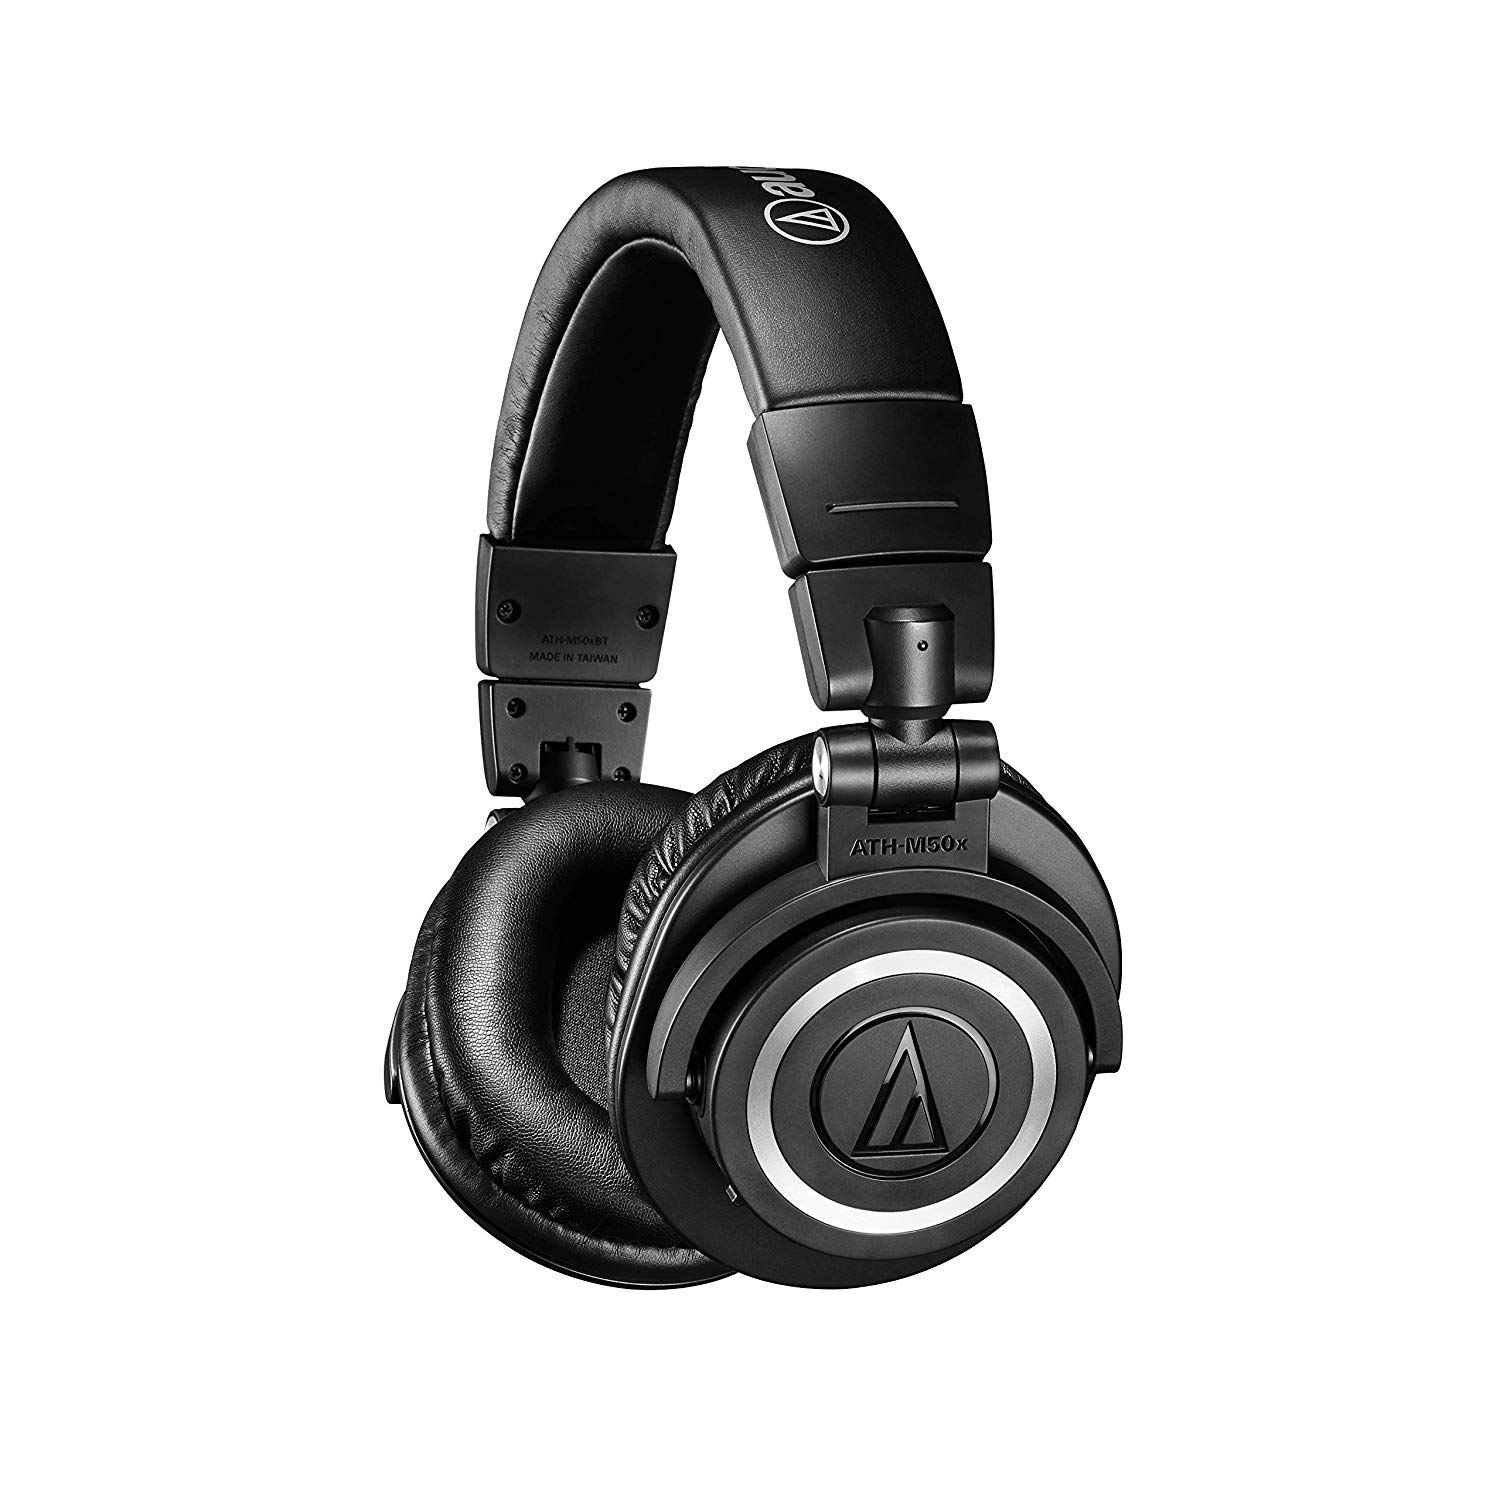 Audio Technica M50XBT Bluetooth, Wired Headset with Mic (Black, Over the Ear)